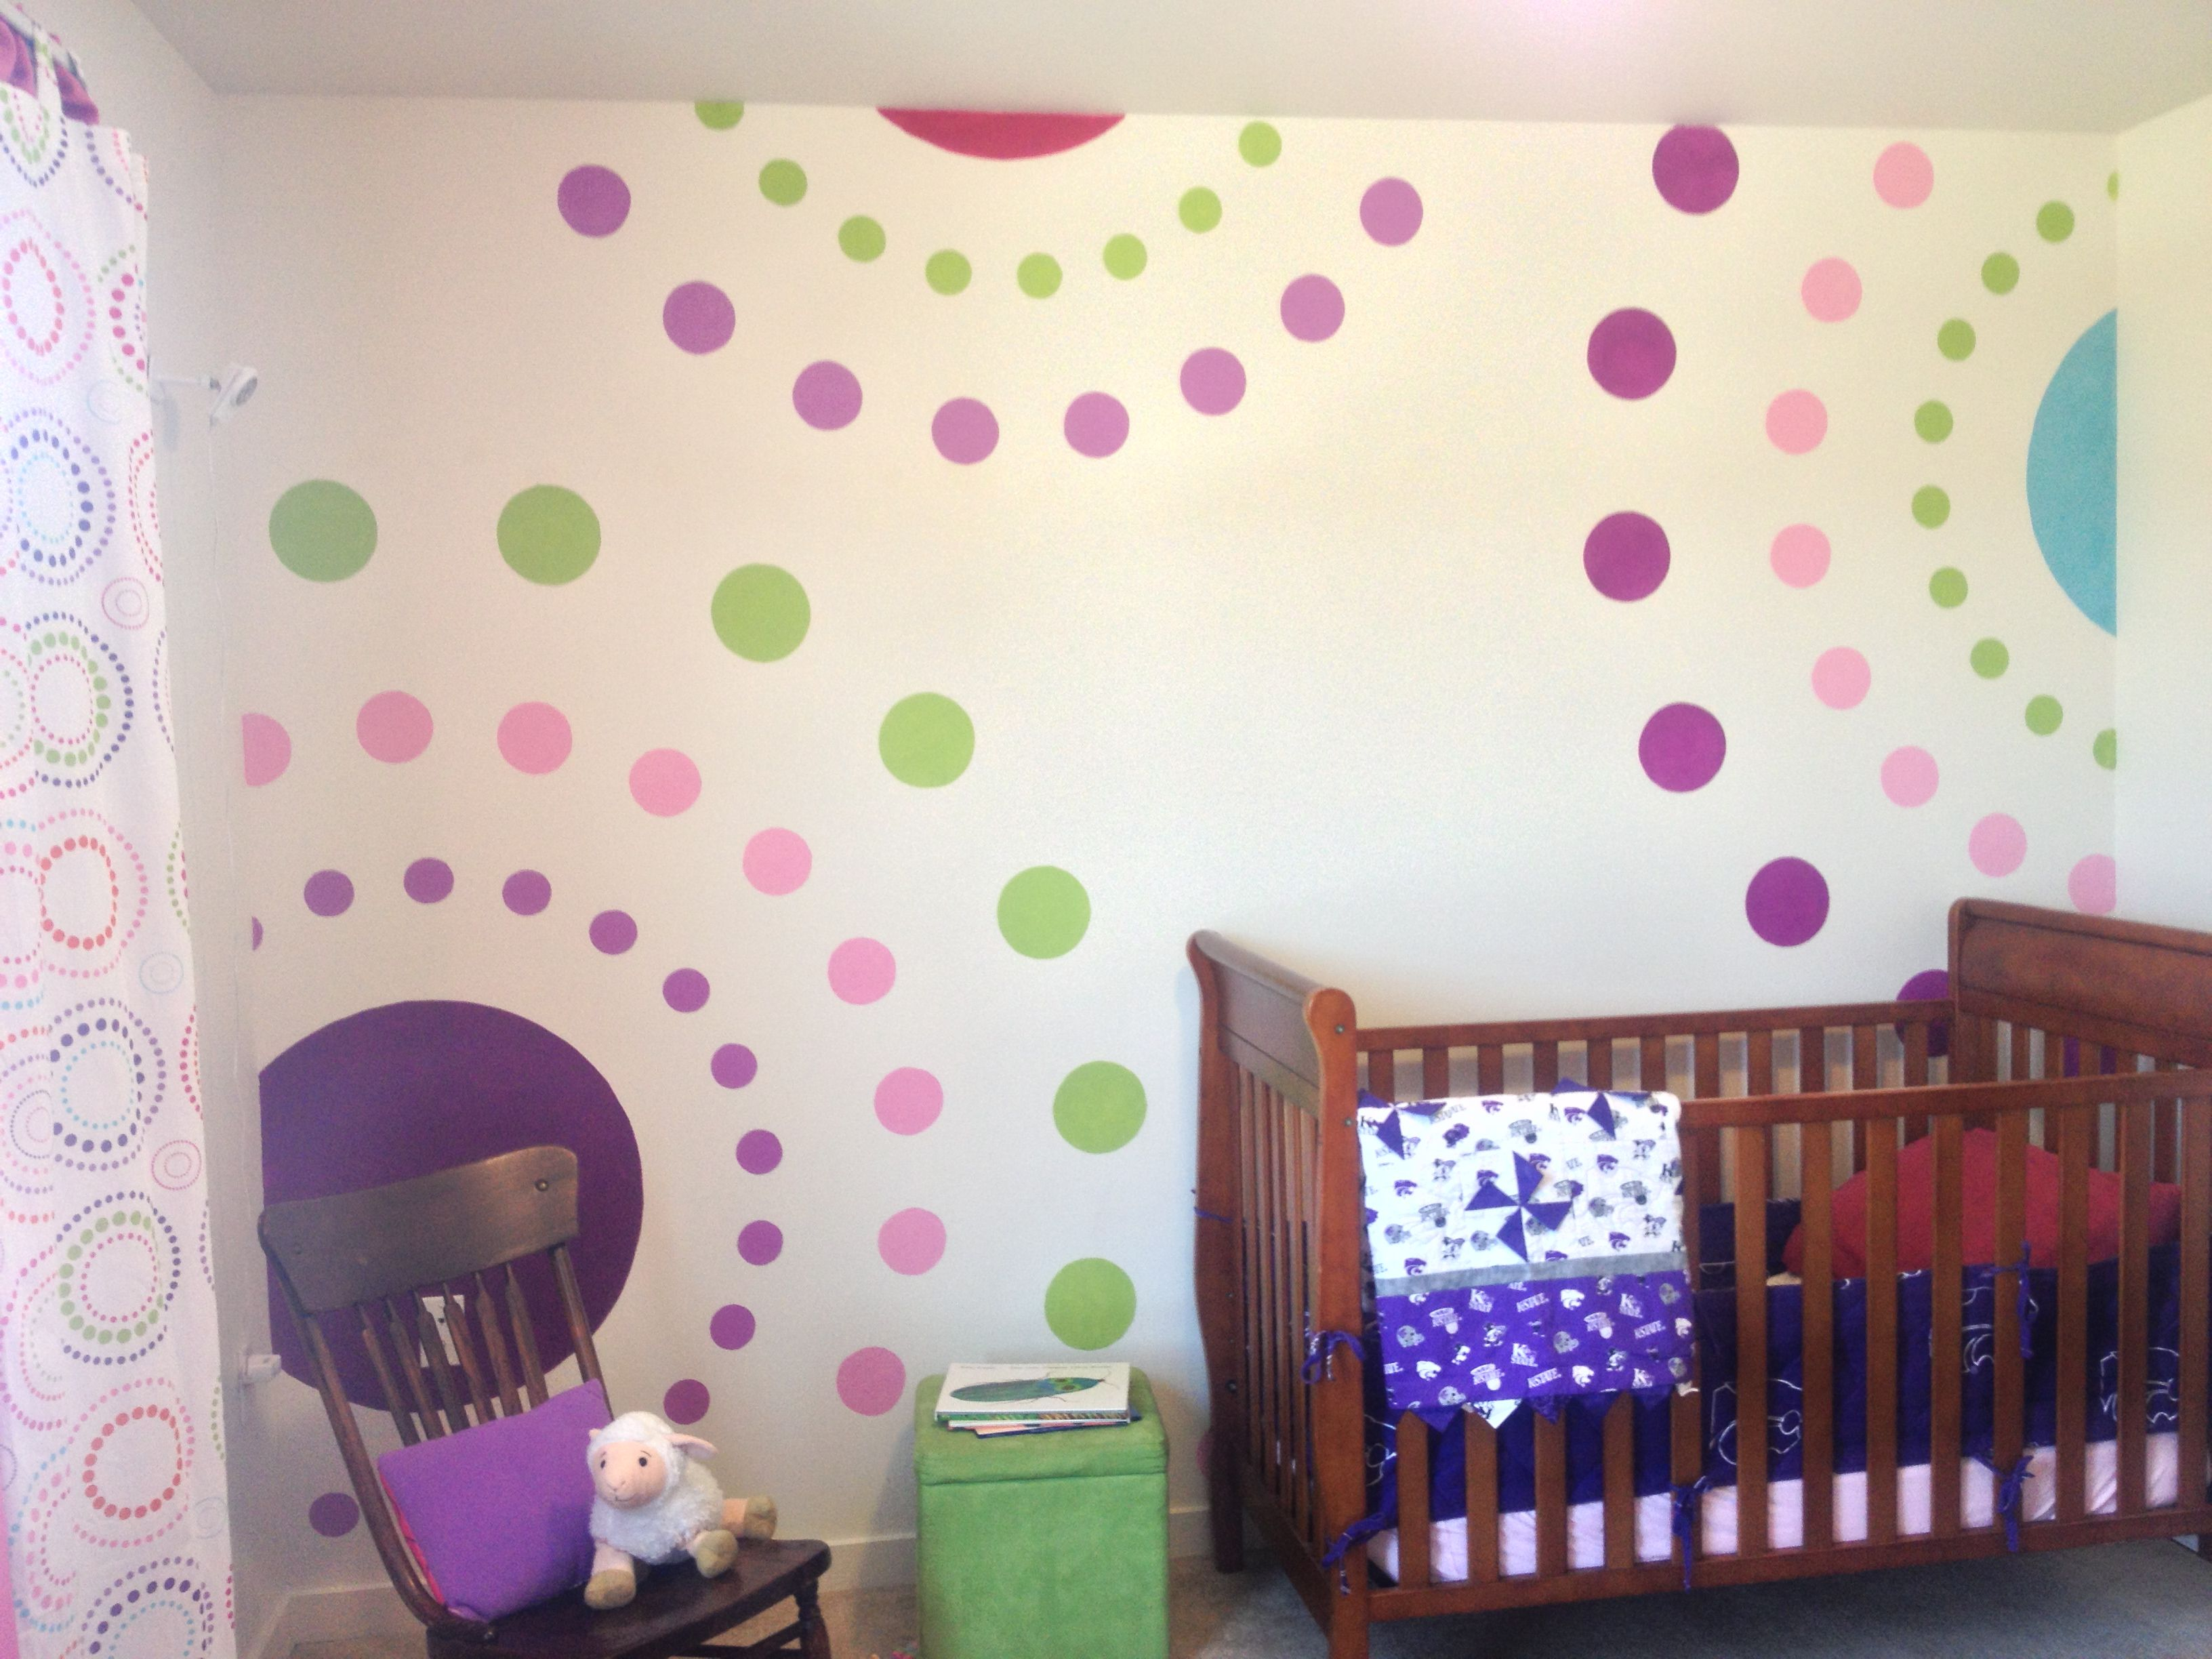 Polka dot wall mural with stencil super easy girls riom polka dot wall mural with stencil super easy girls riom amipublicfo Images